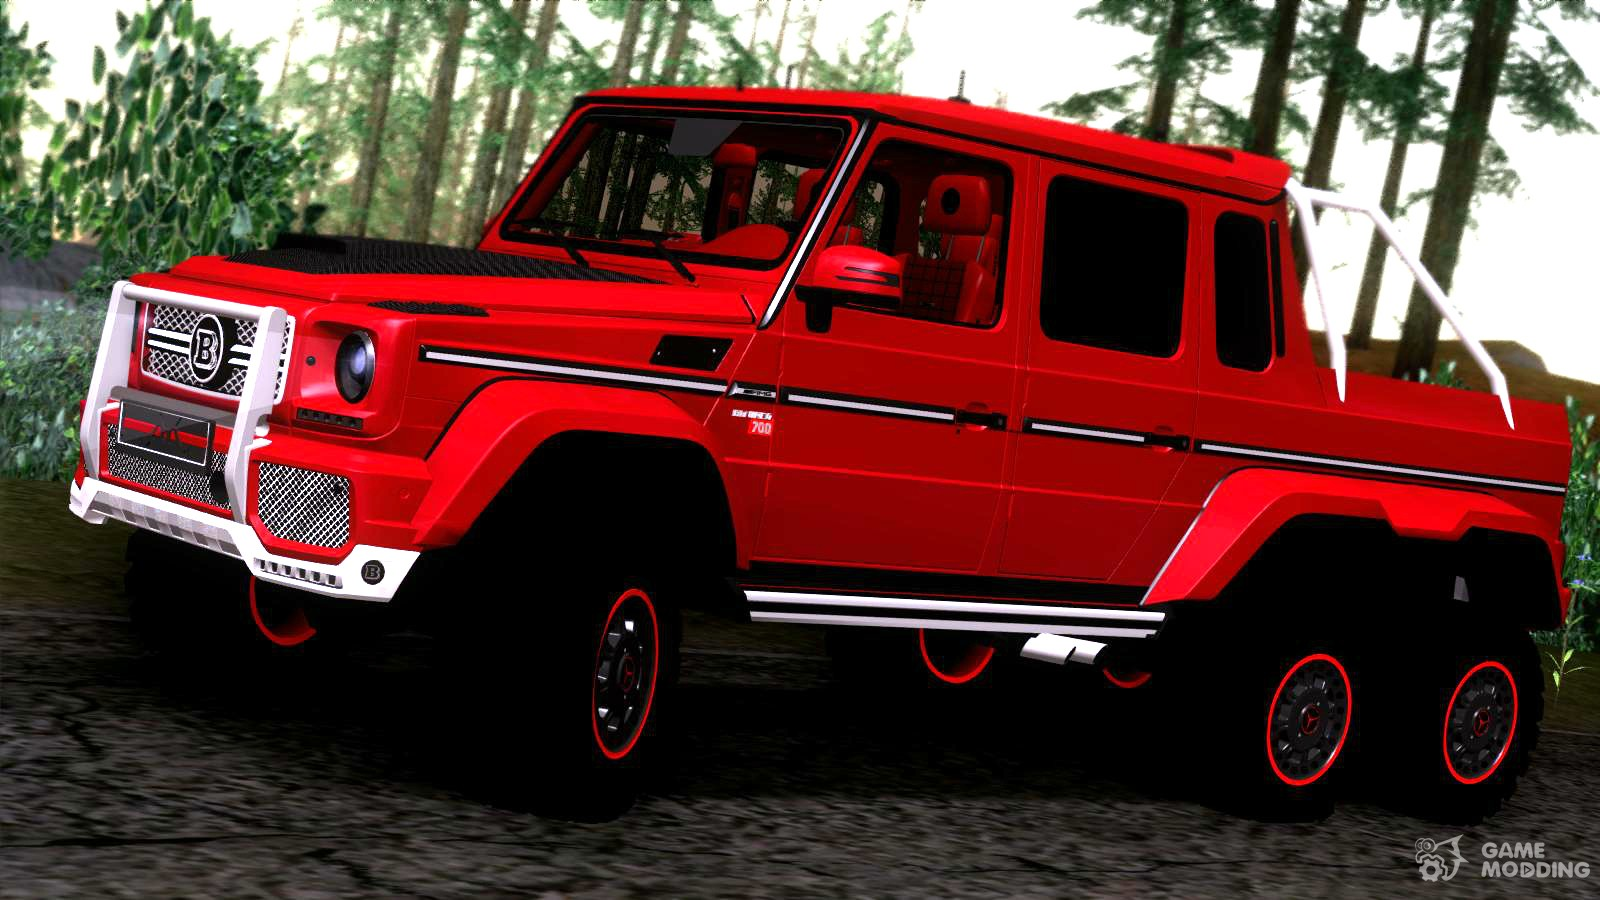 700 brabus mercedes benz amg g63 6 x 6 for gta san andreas for Mercedes benz g63 amg 6x6 price